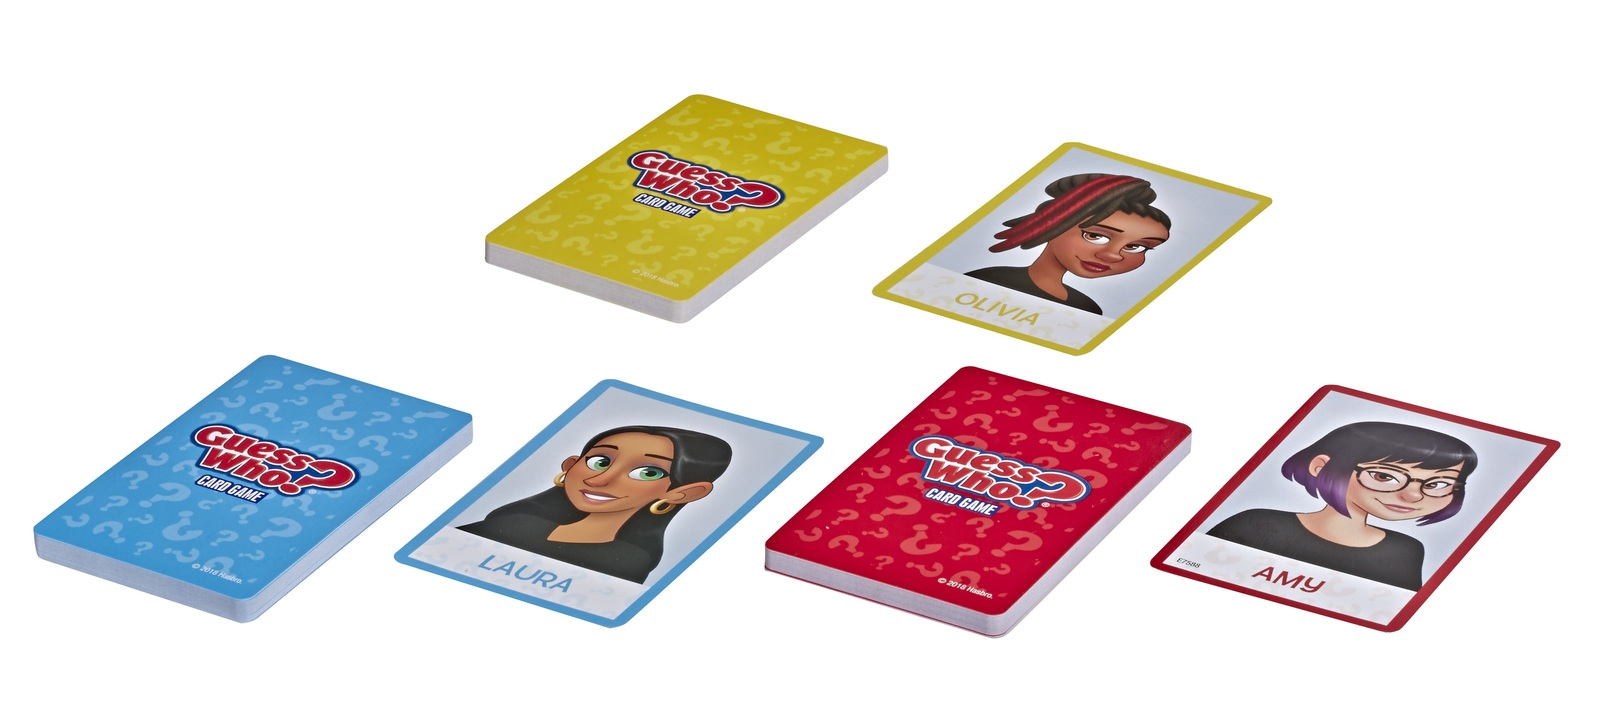 Guess Who - The Card Game image